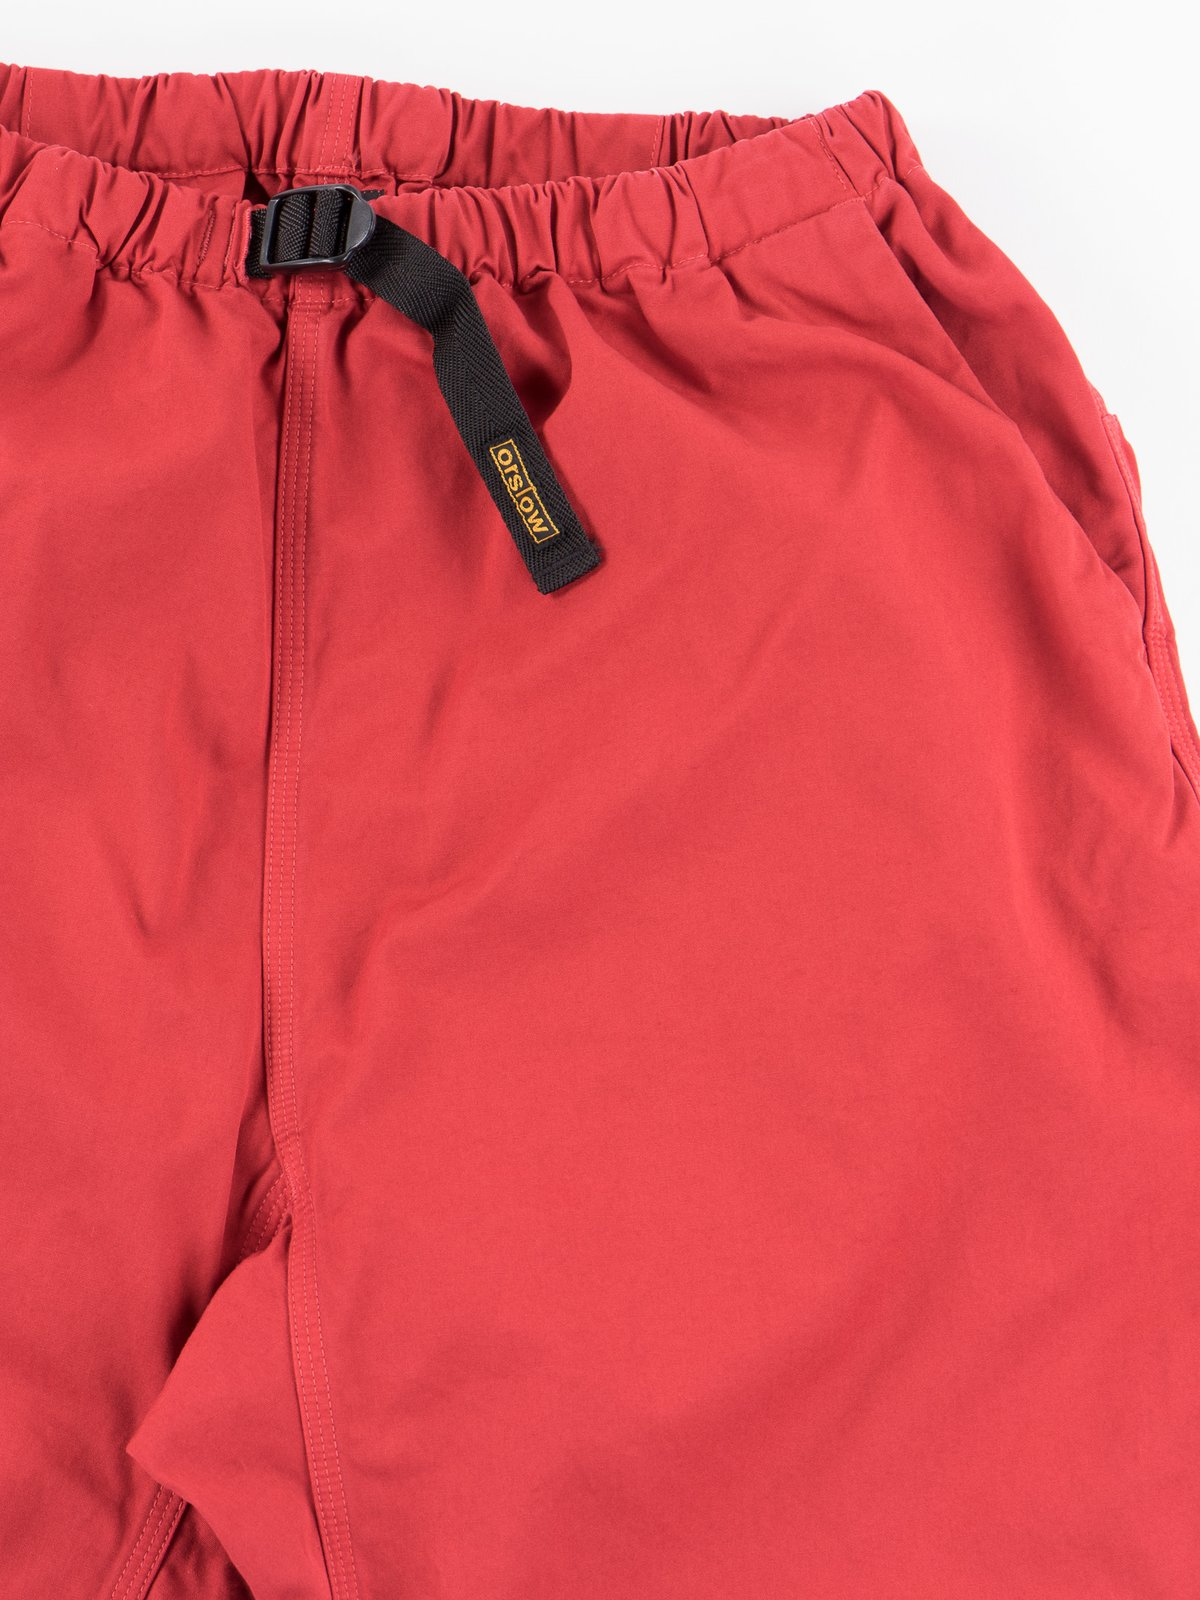 Red Overdyed Poplin Climbing Pant - Image 2